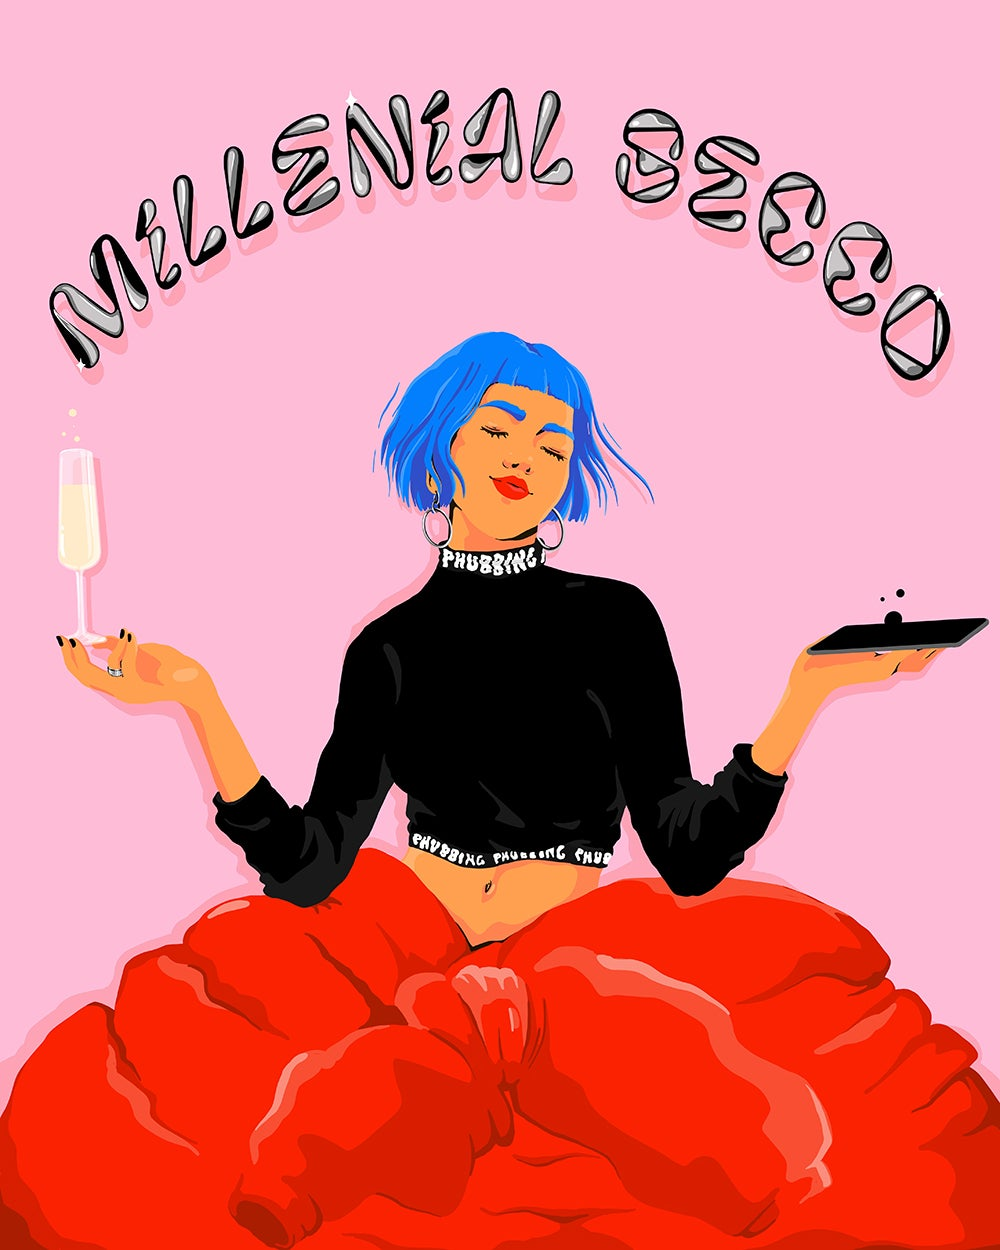 Image of Millenial Secco – Limited Fine Art Print